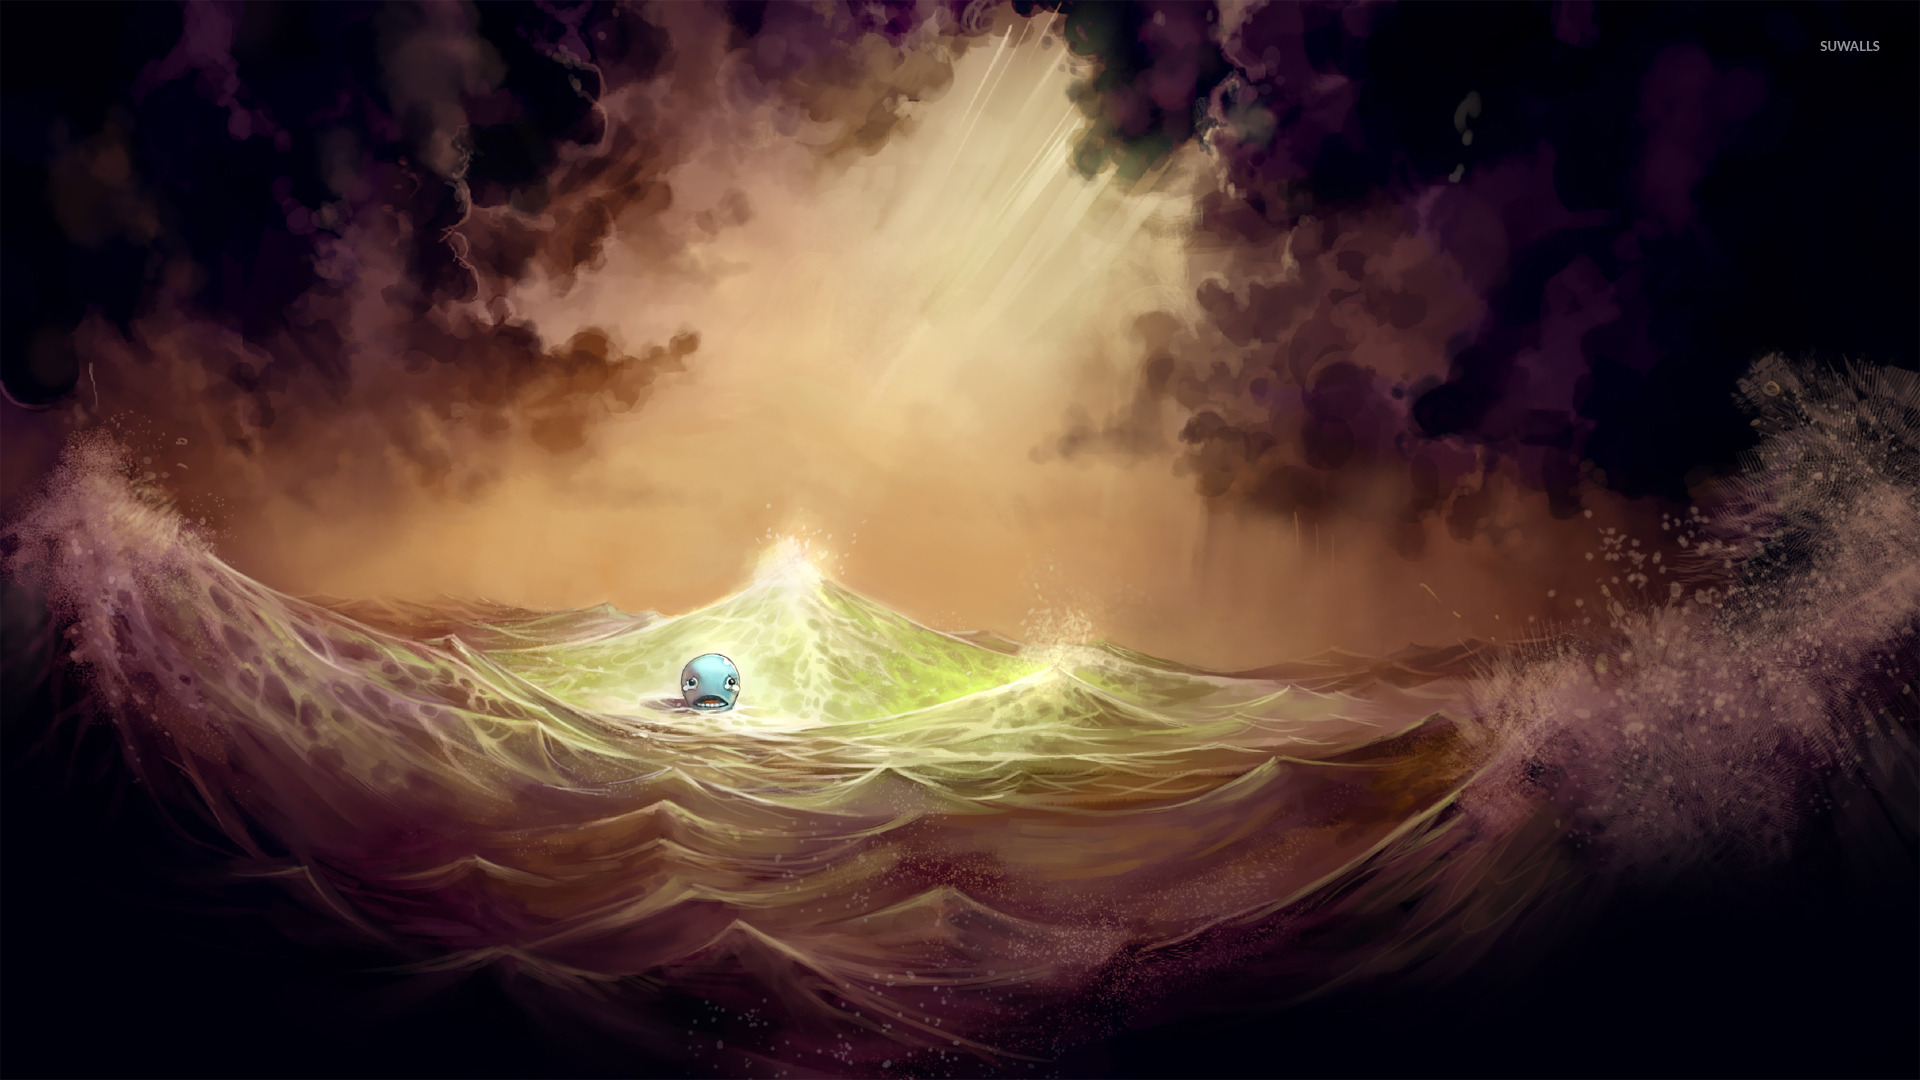 Sad Quotes Wallpapers For Desktop Sad Whale In The Storm Wallpaper Fantasy Wallpapers 22603